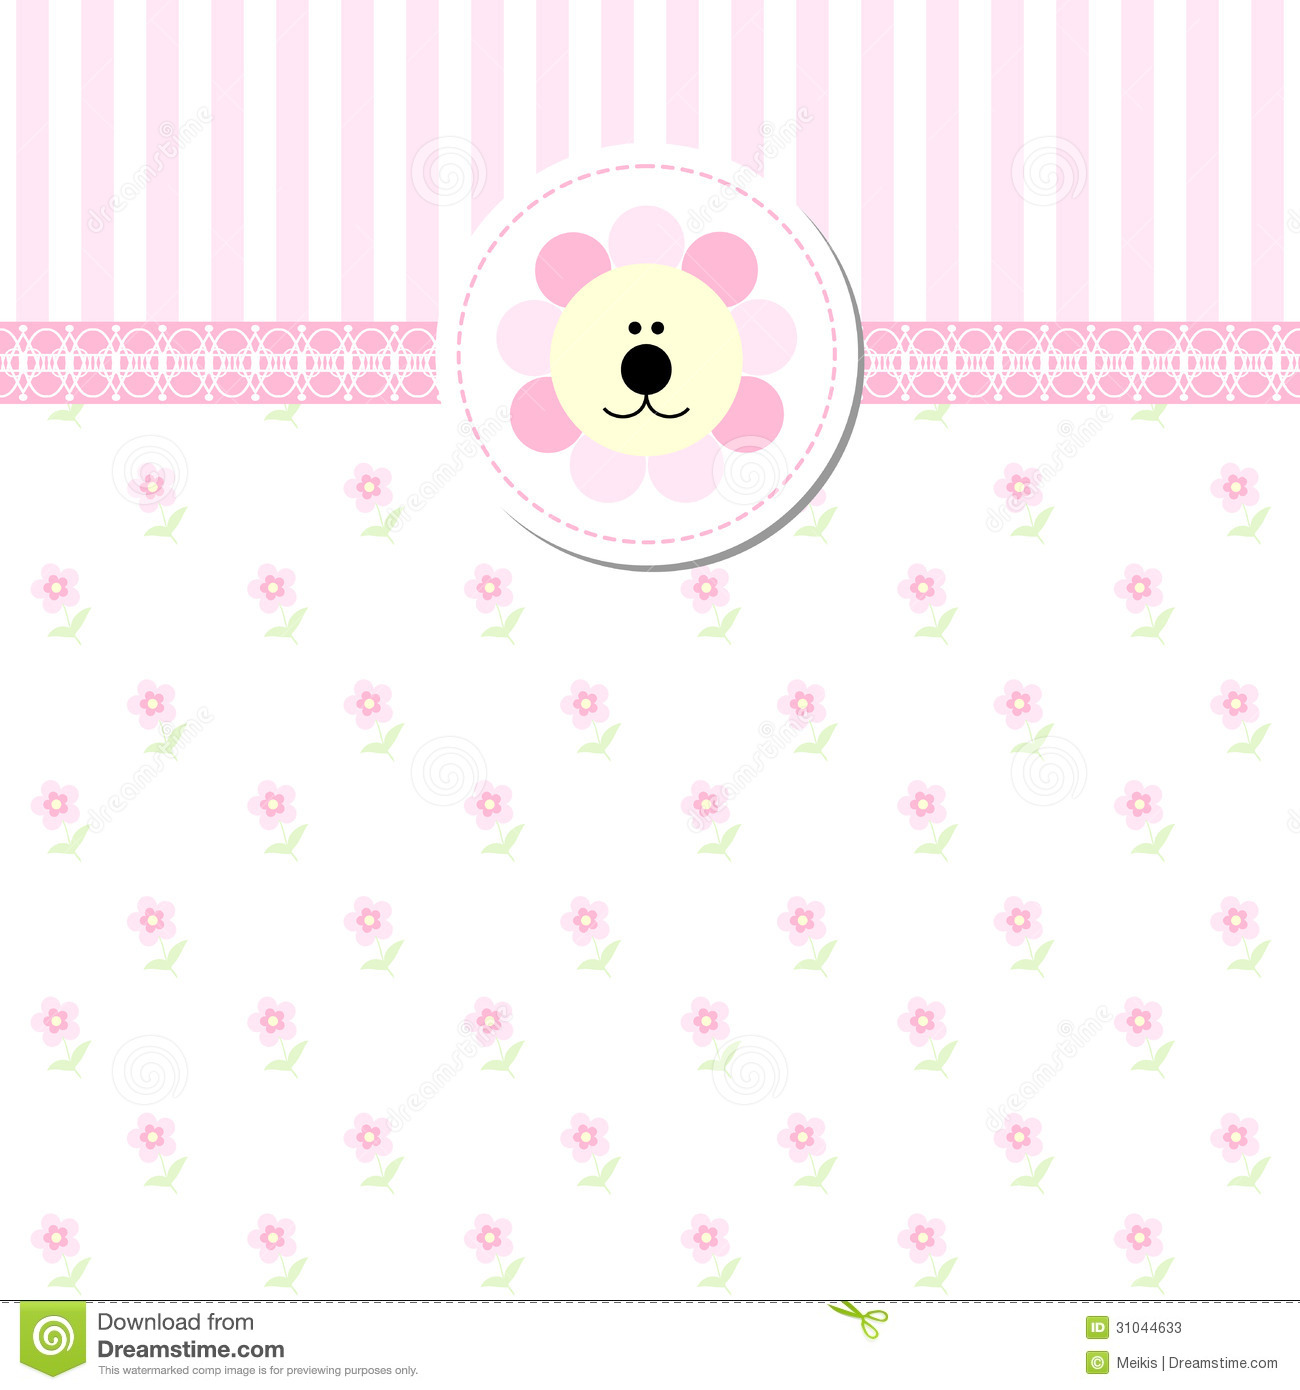 39 Baby Shower Wallpaper Images On Wallpapersafari